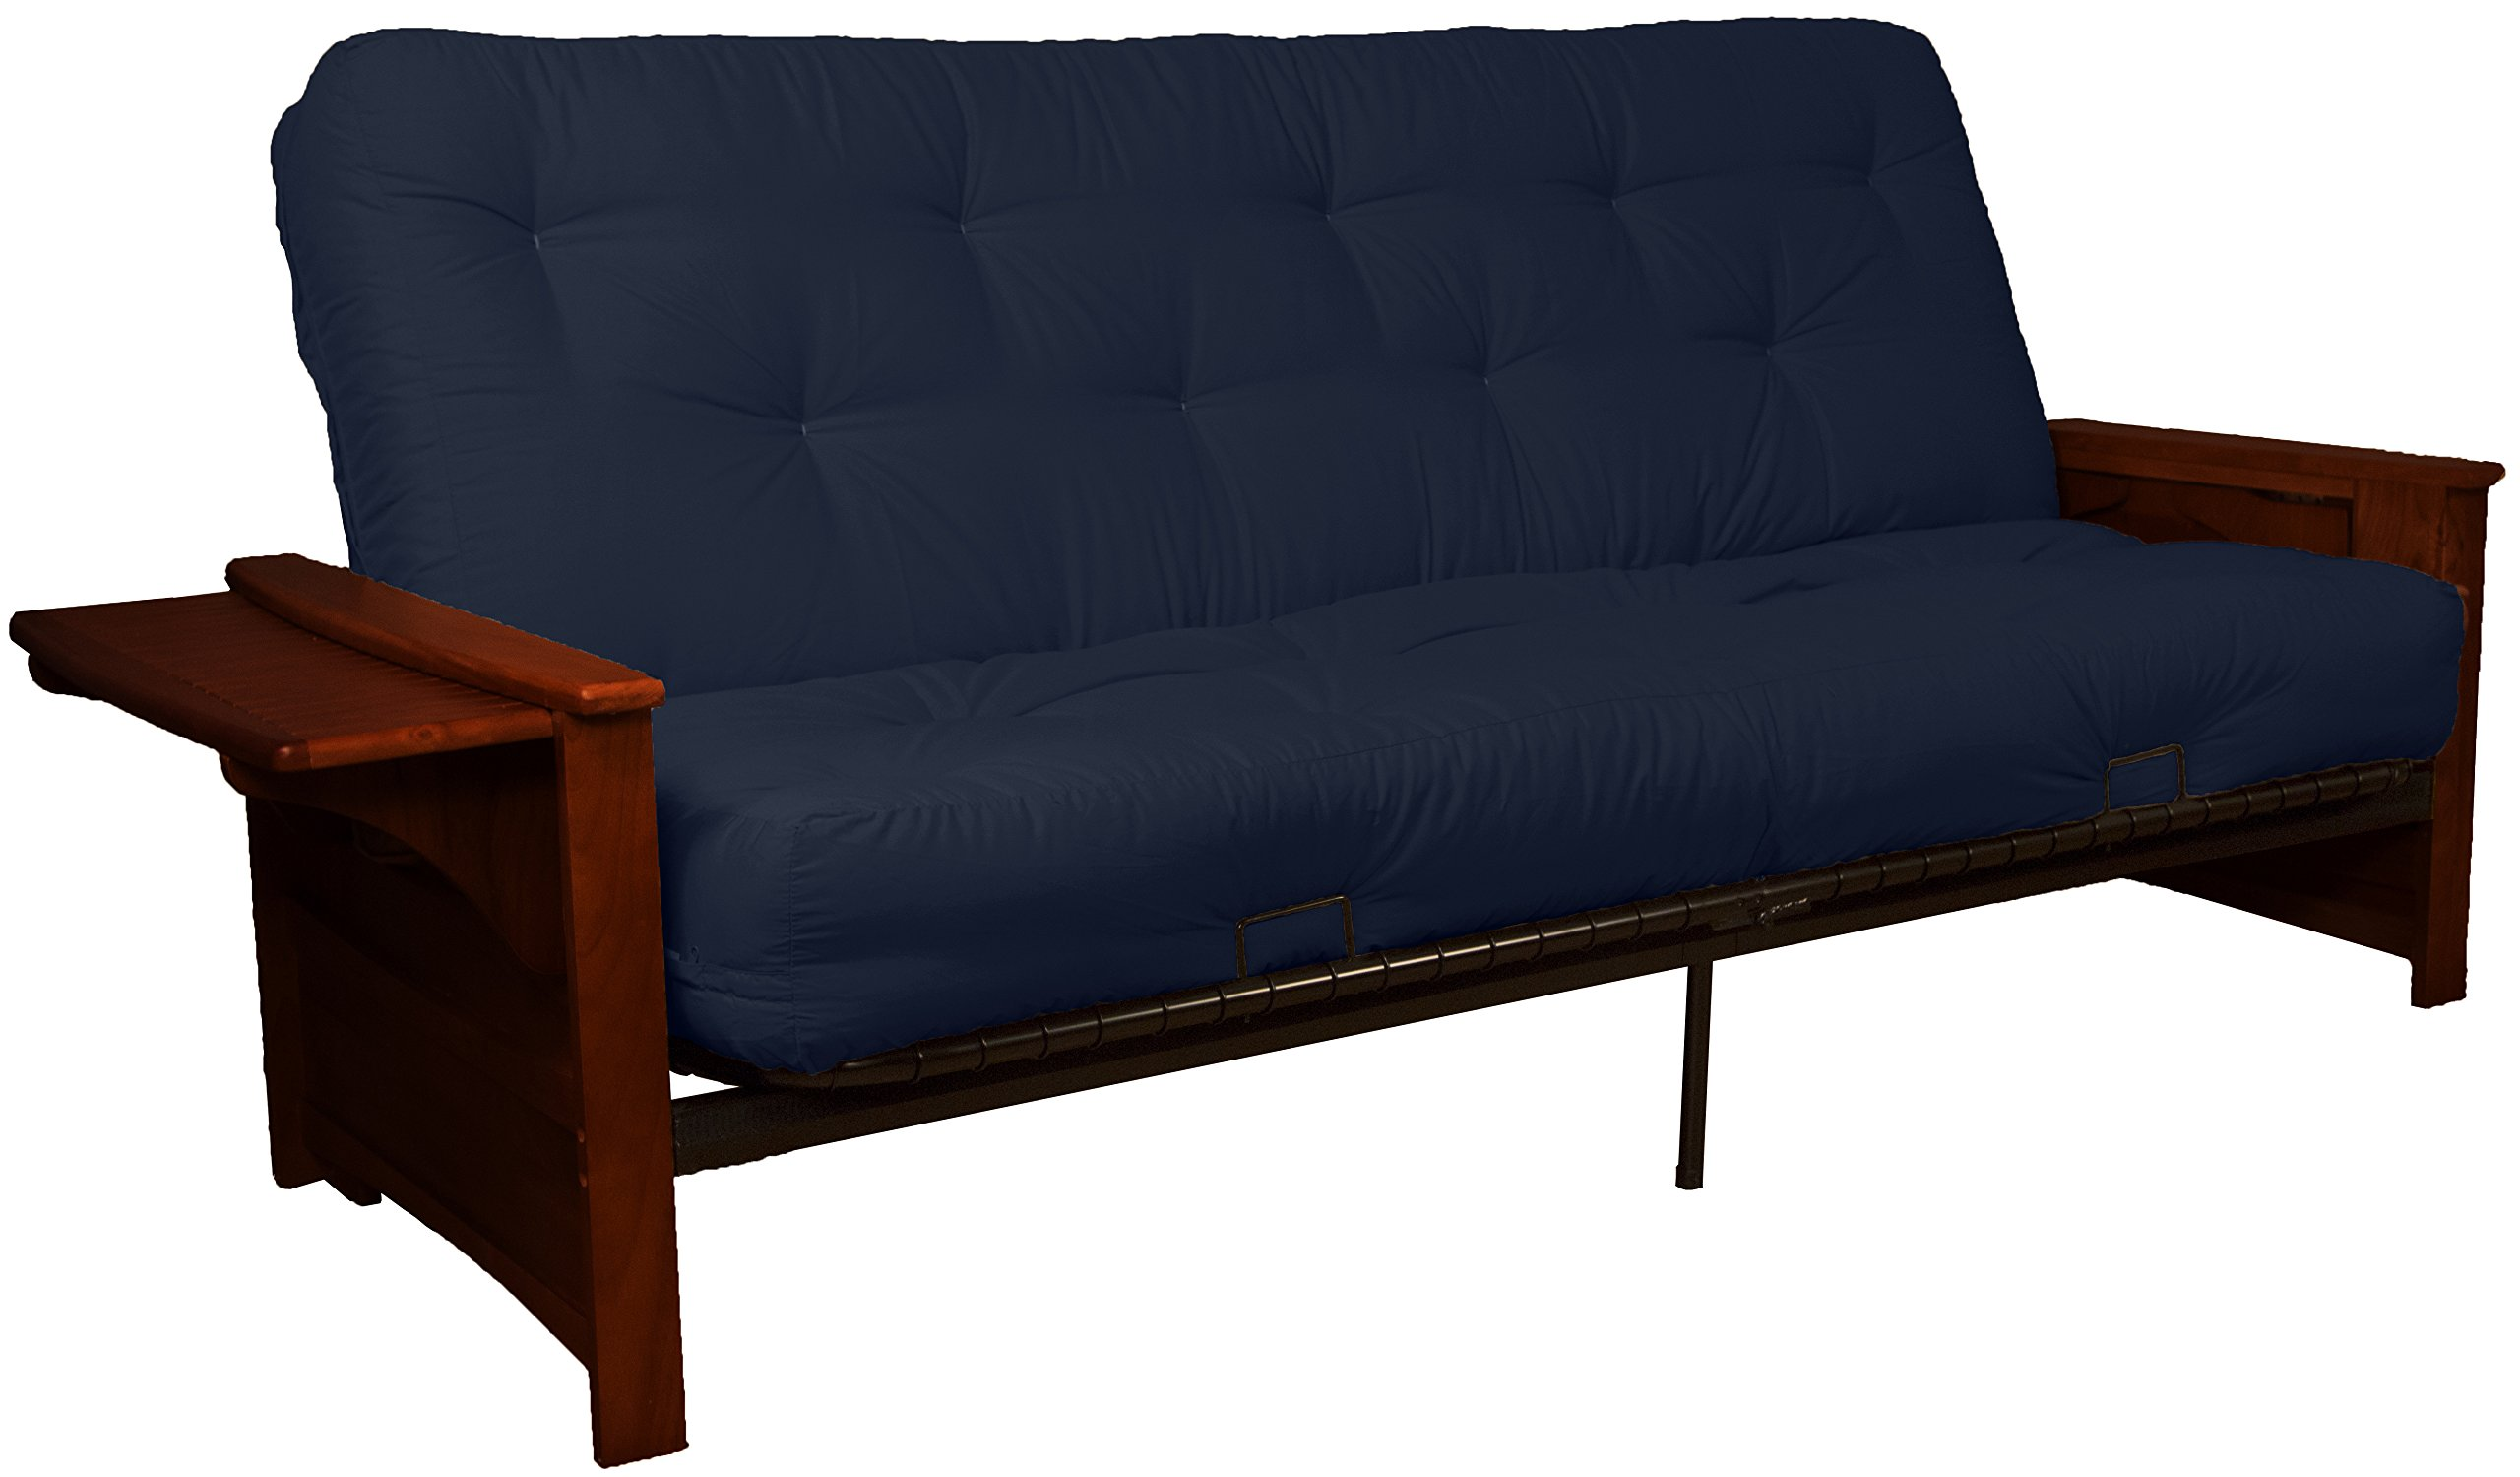 Valet Attached End Table Style 8-Inch Loft Inner Spring Futon Sofa Sleeper Bed, Queen-size, Mahogany Arm Finish, Twill Navy Blue Upholstery